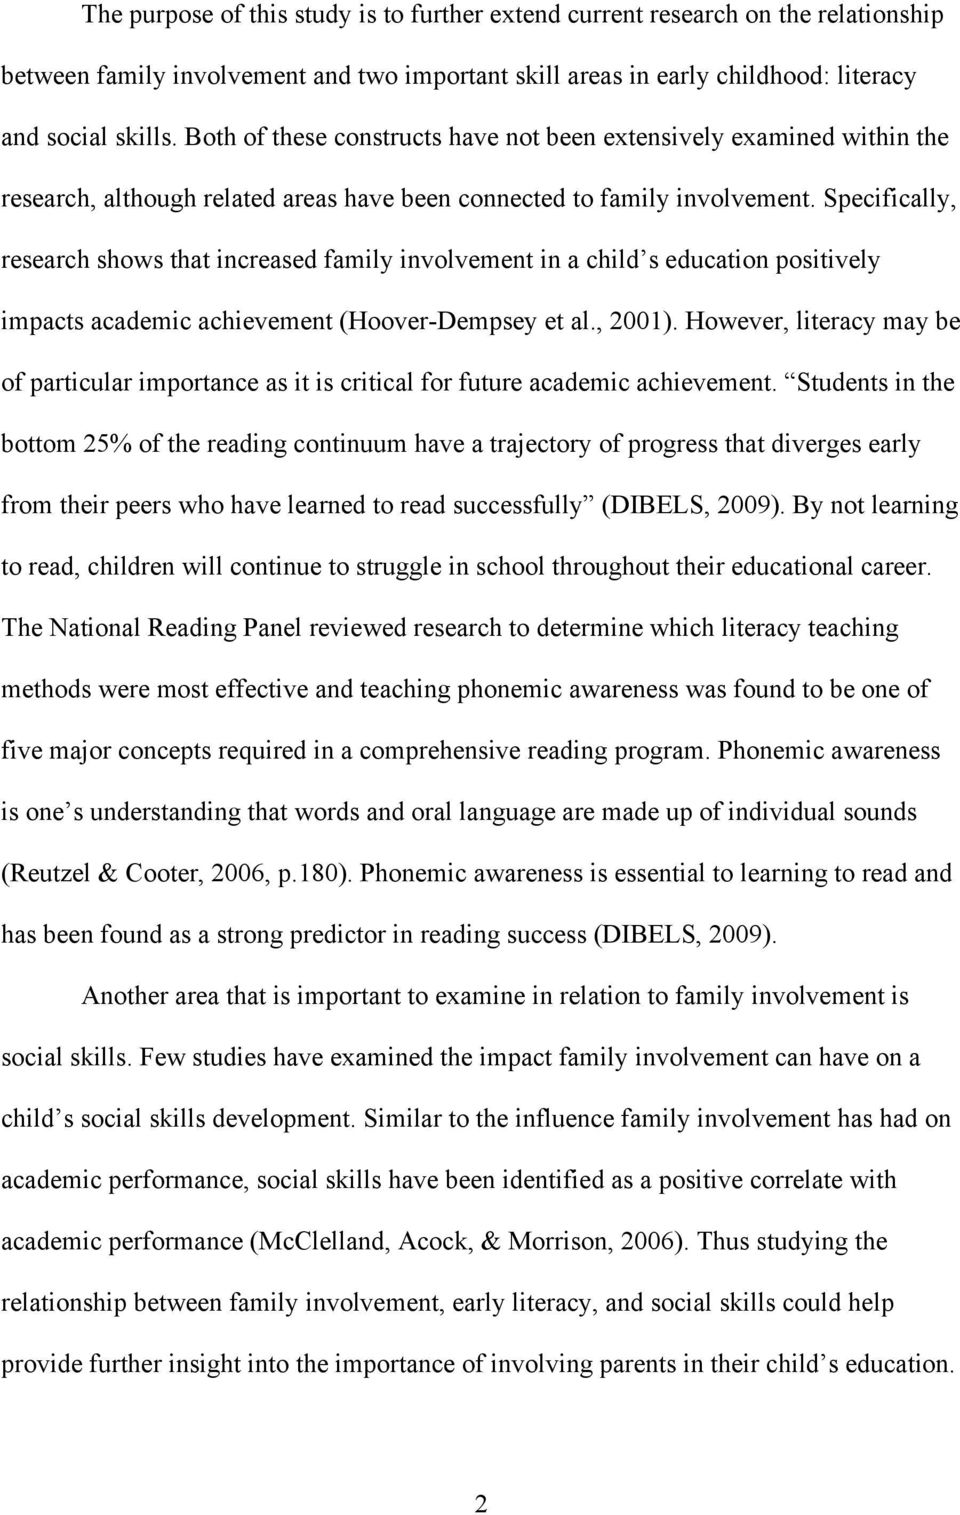 Specifically, research shows that increased family involvement in a child s education positively impacts academic achievement (Hoover-Dempsey et al., 2001).